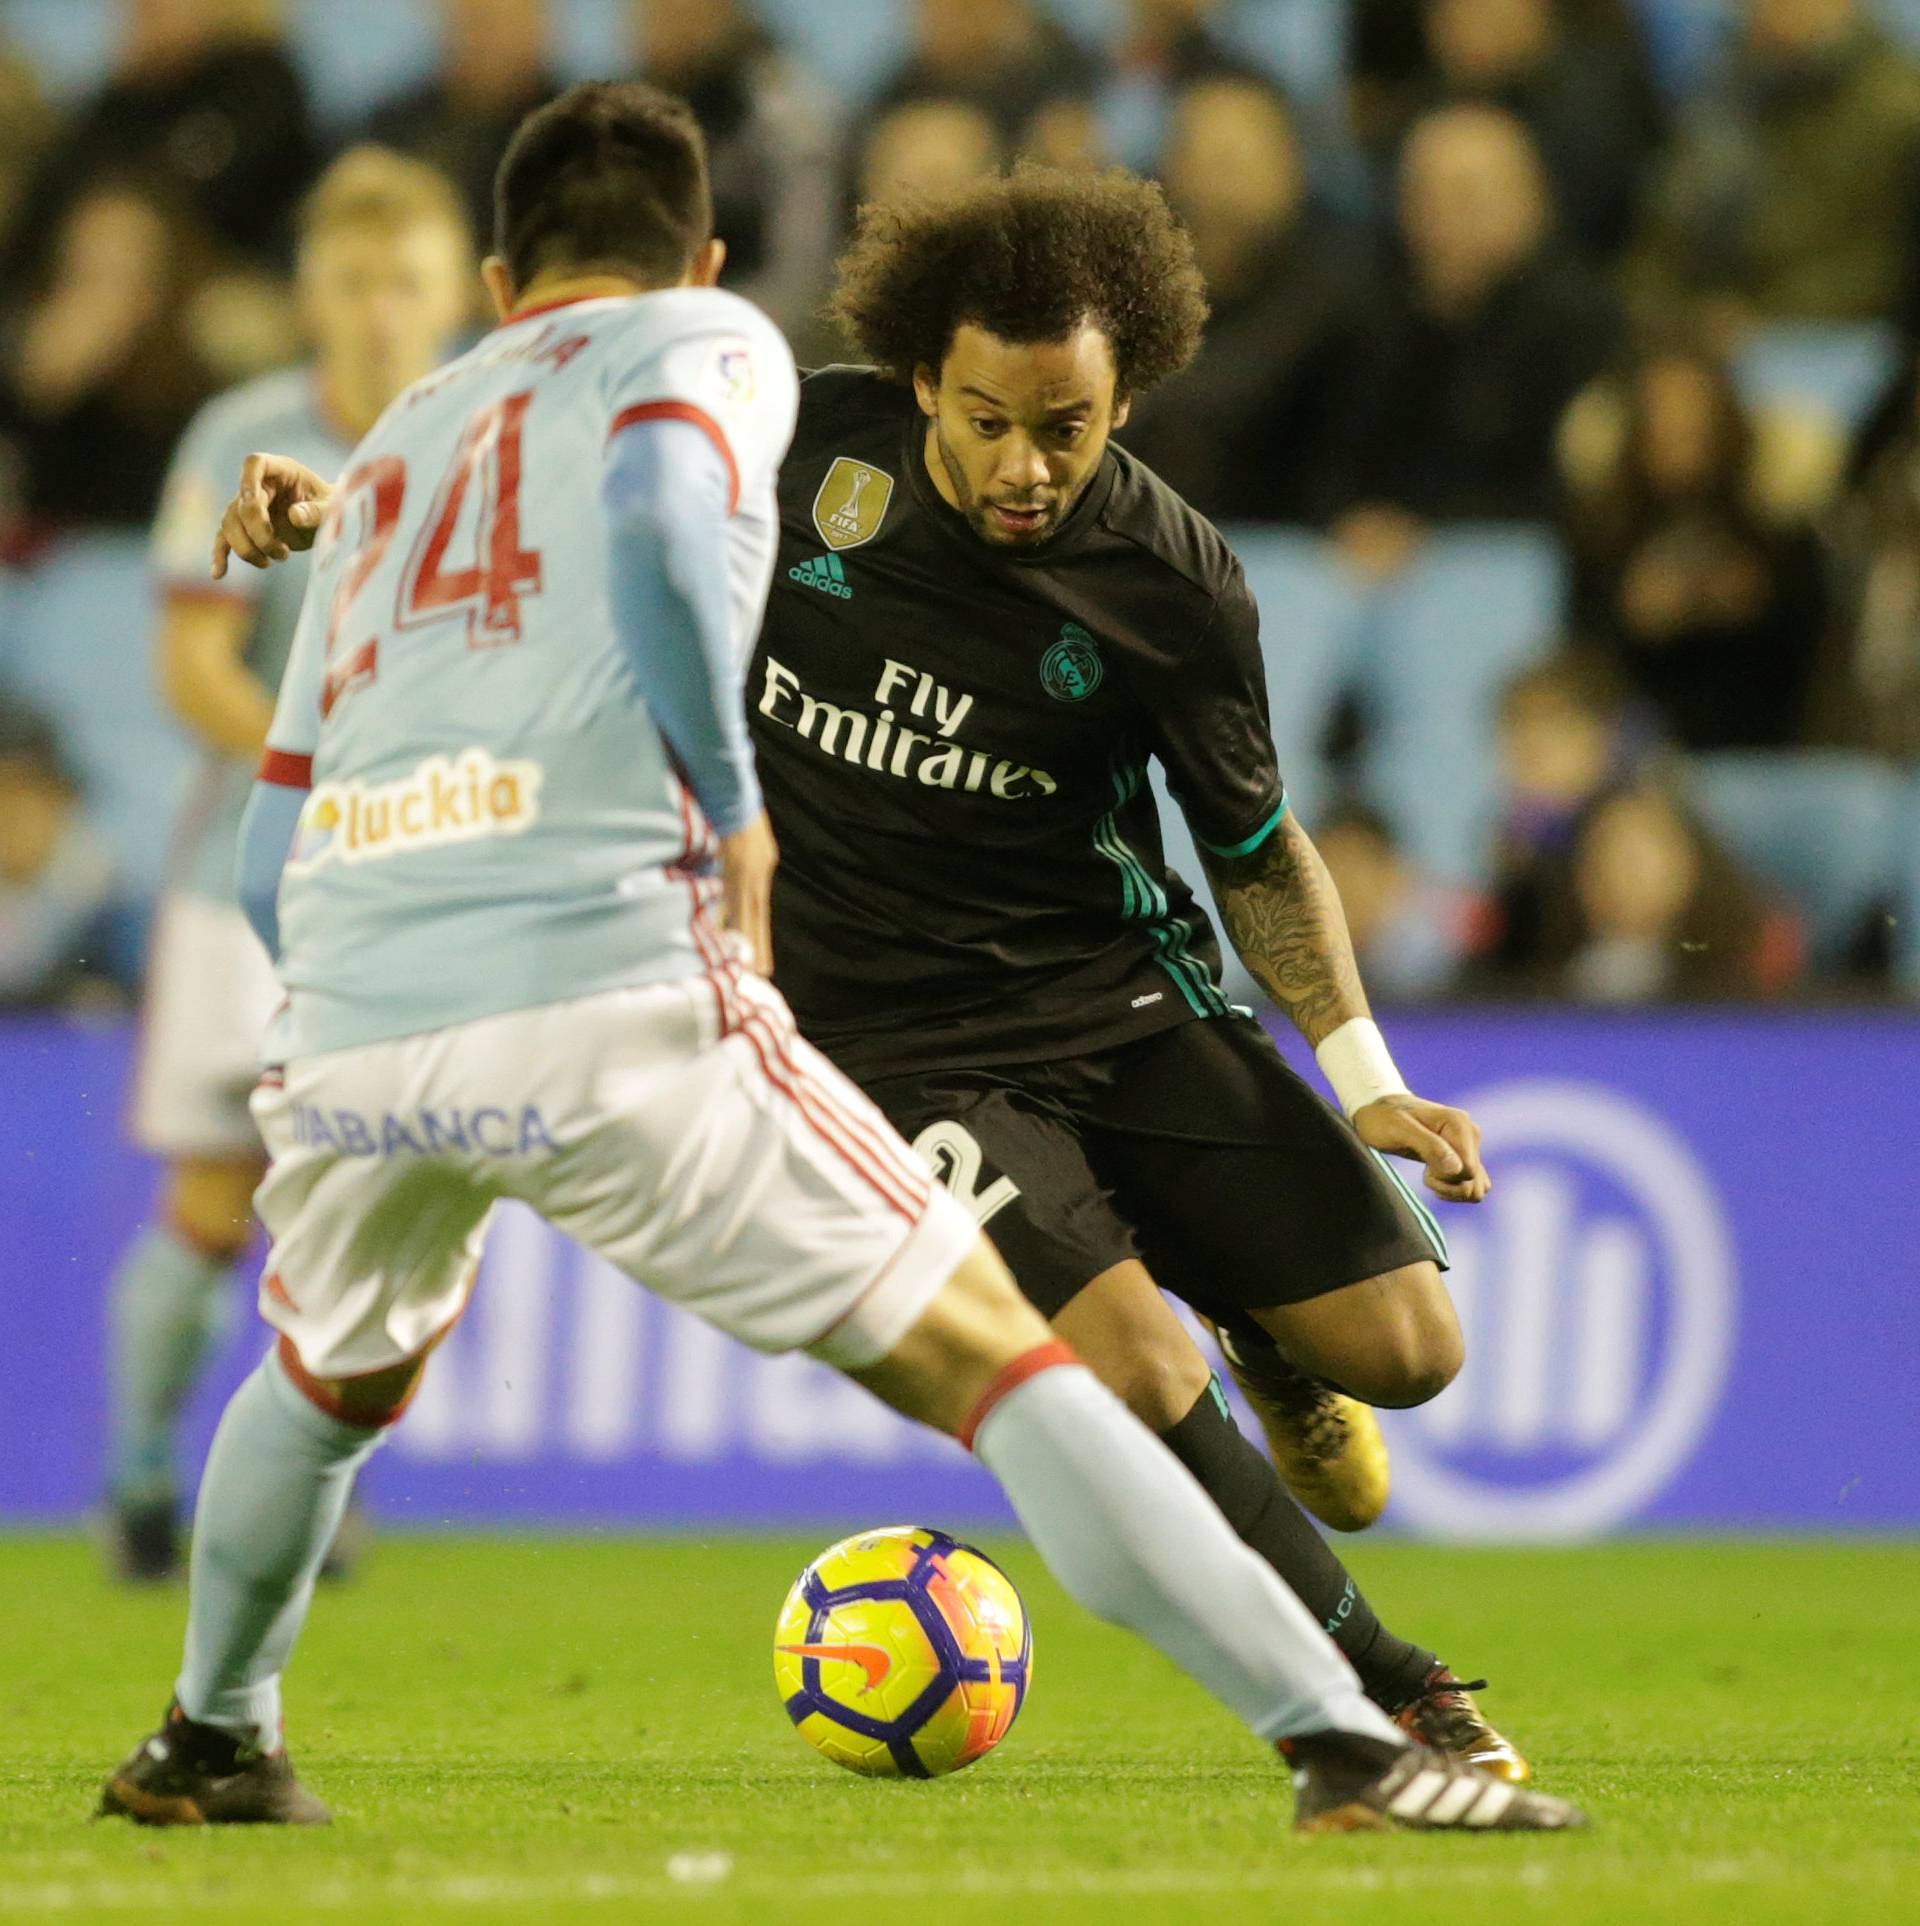 La Liga Santander - Celta Vigo vs Real Madrid